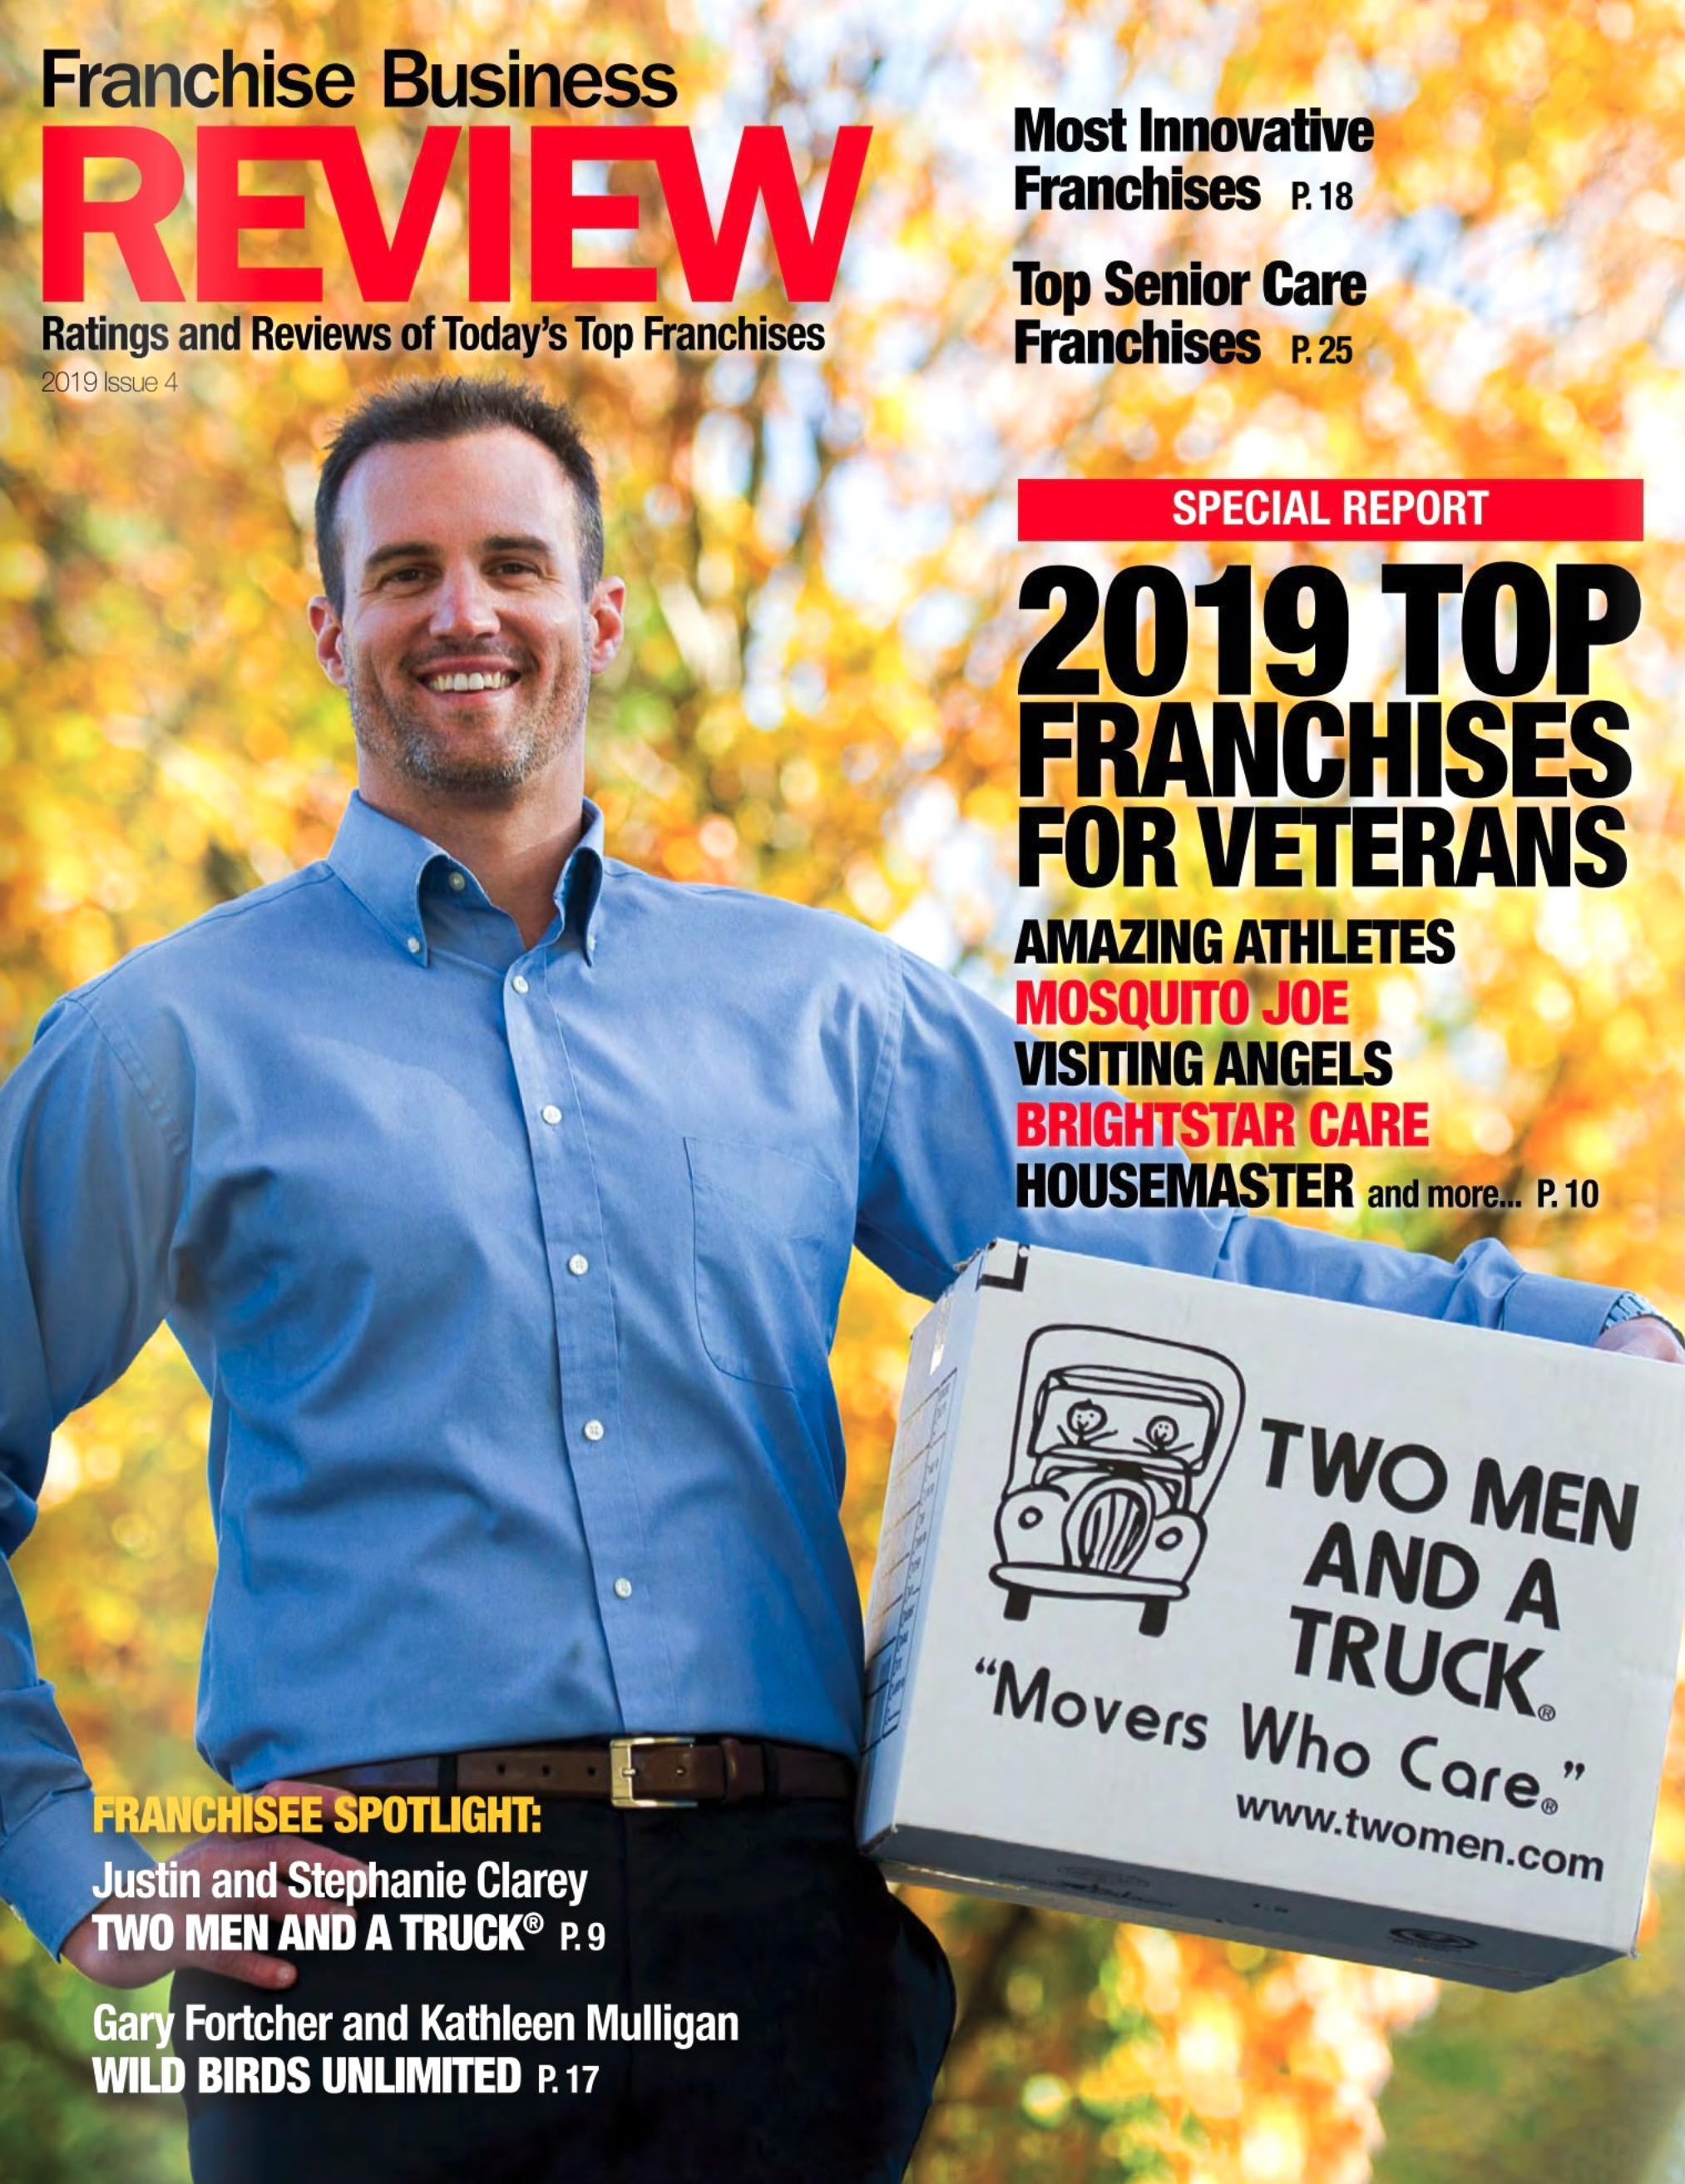 Top Franchises for Veterans Publication Cover